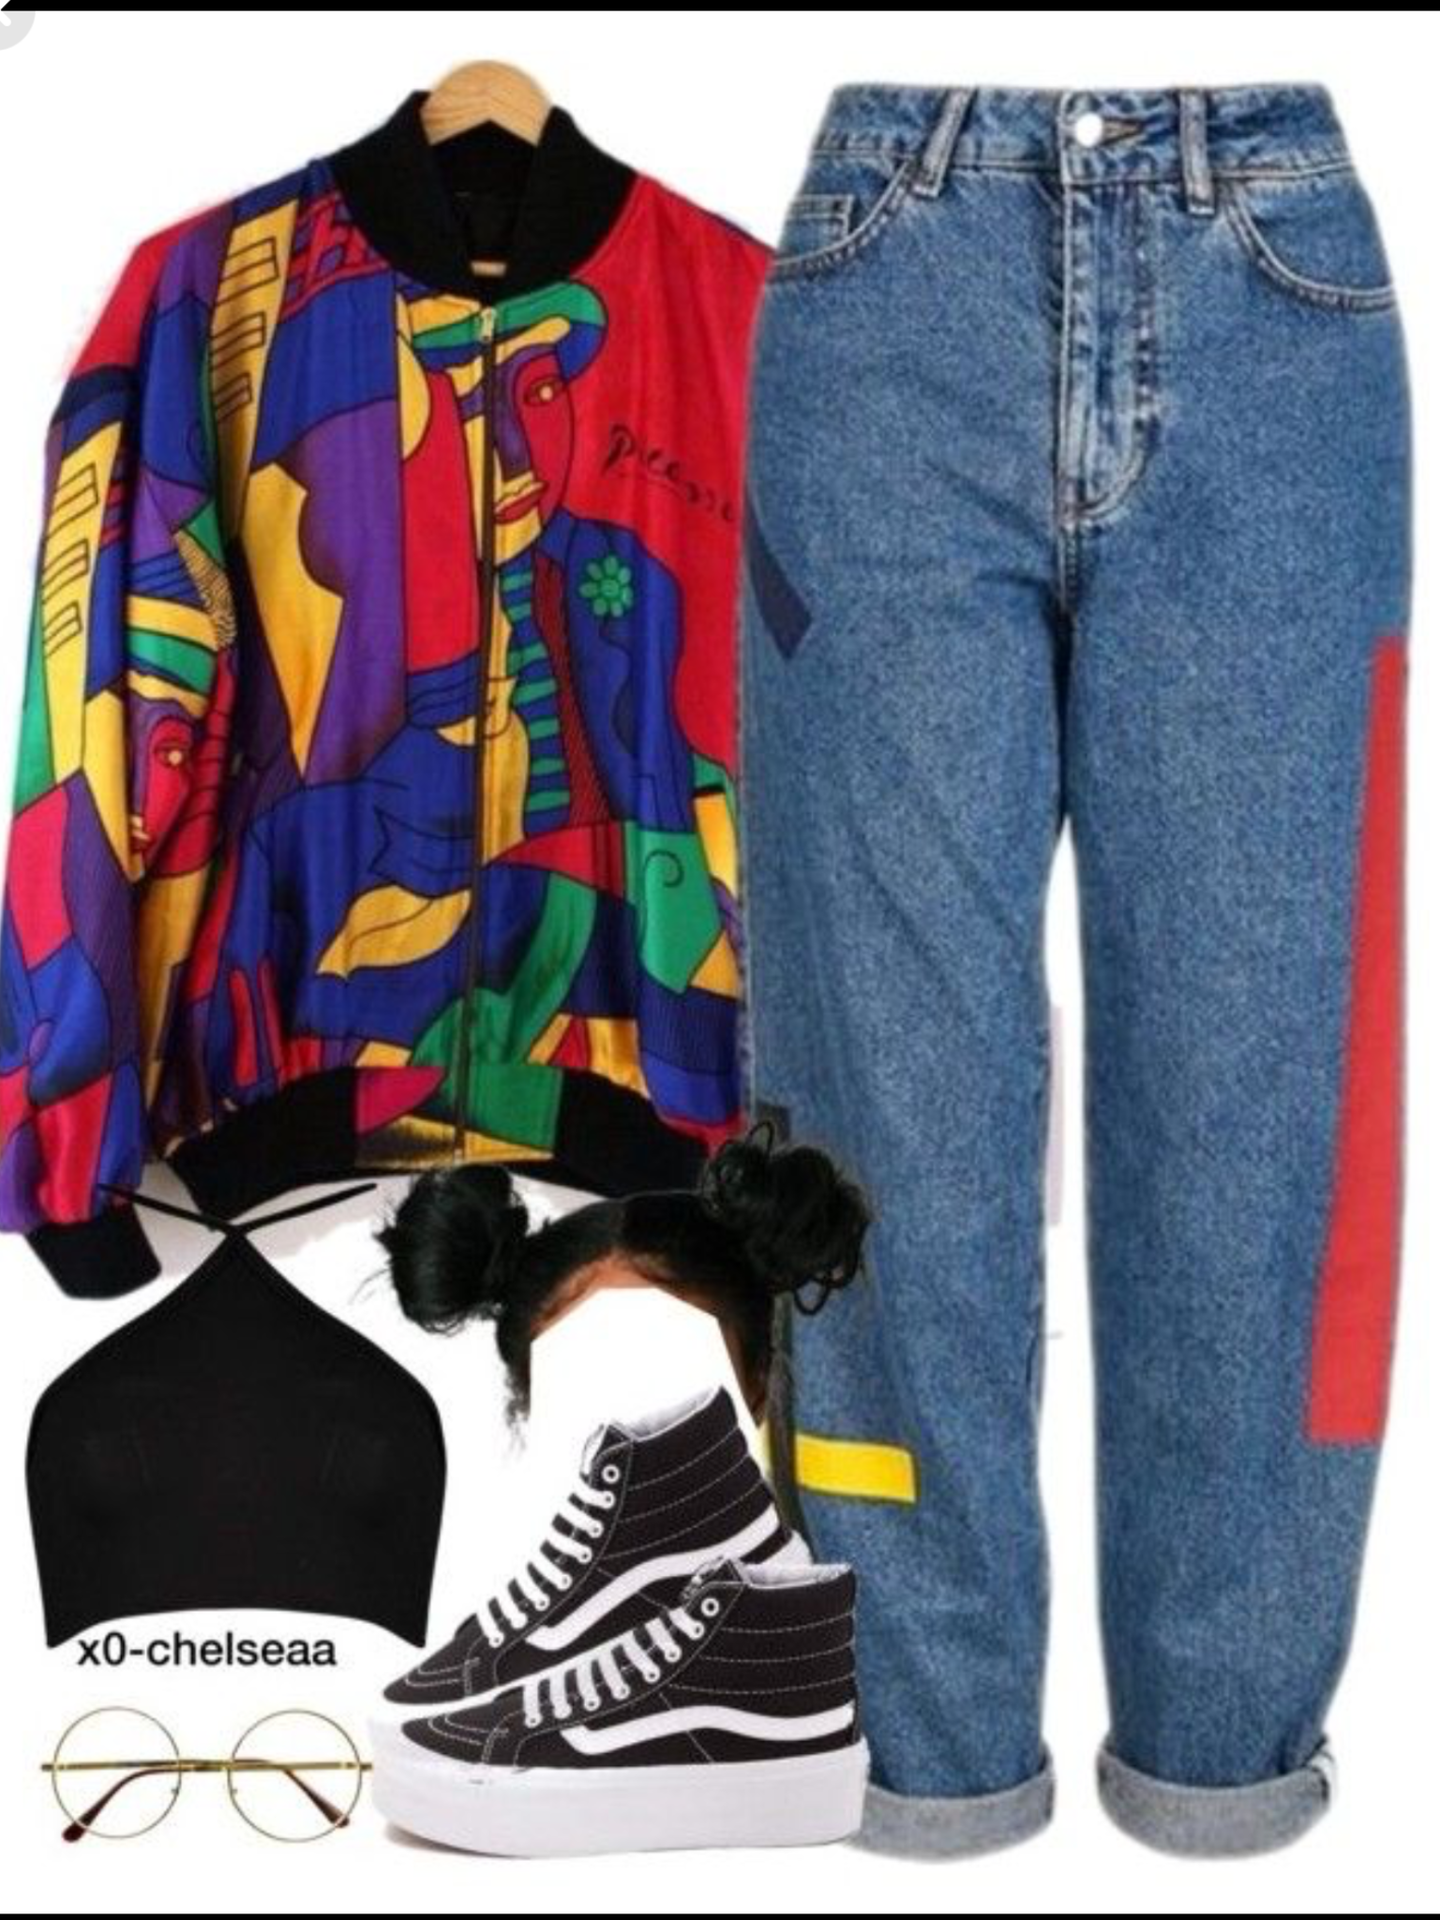 Bts 8th Member Throwback Outfits 90s Party Outfit 90s Fashion Outfits